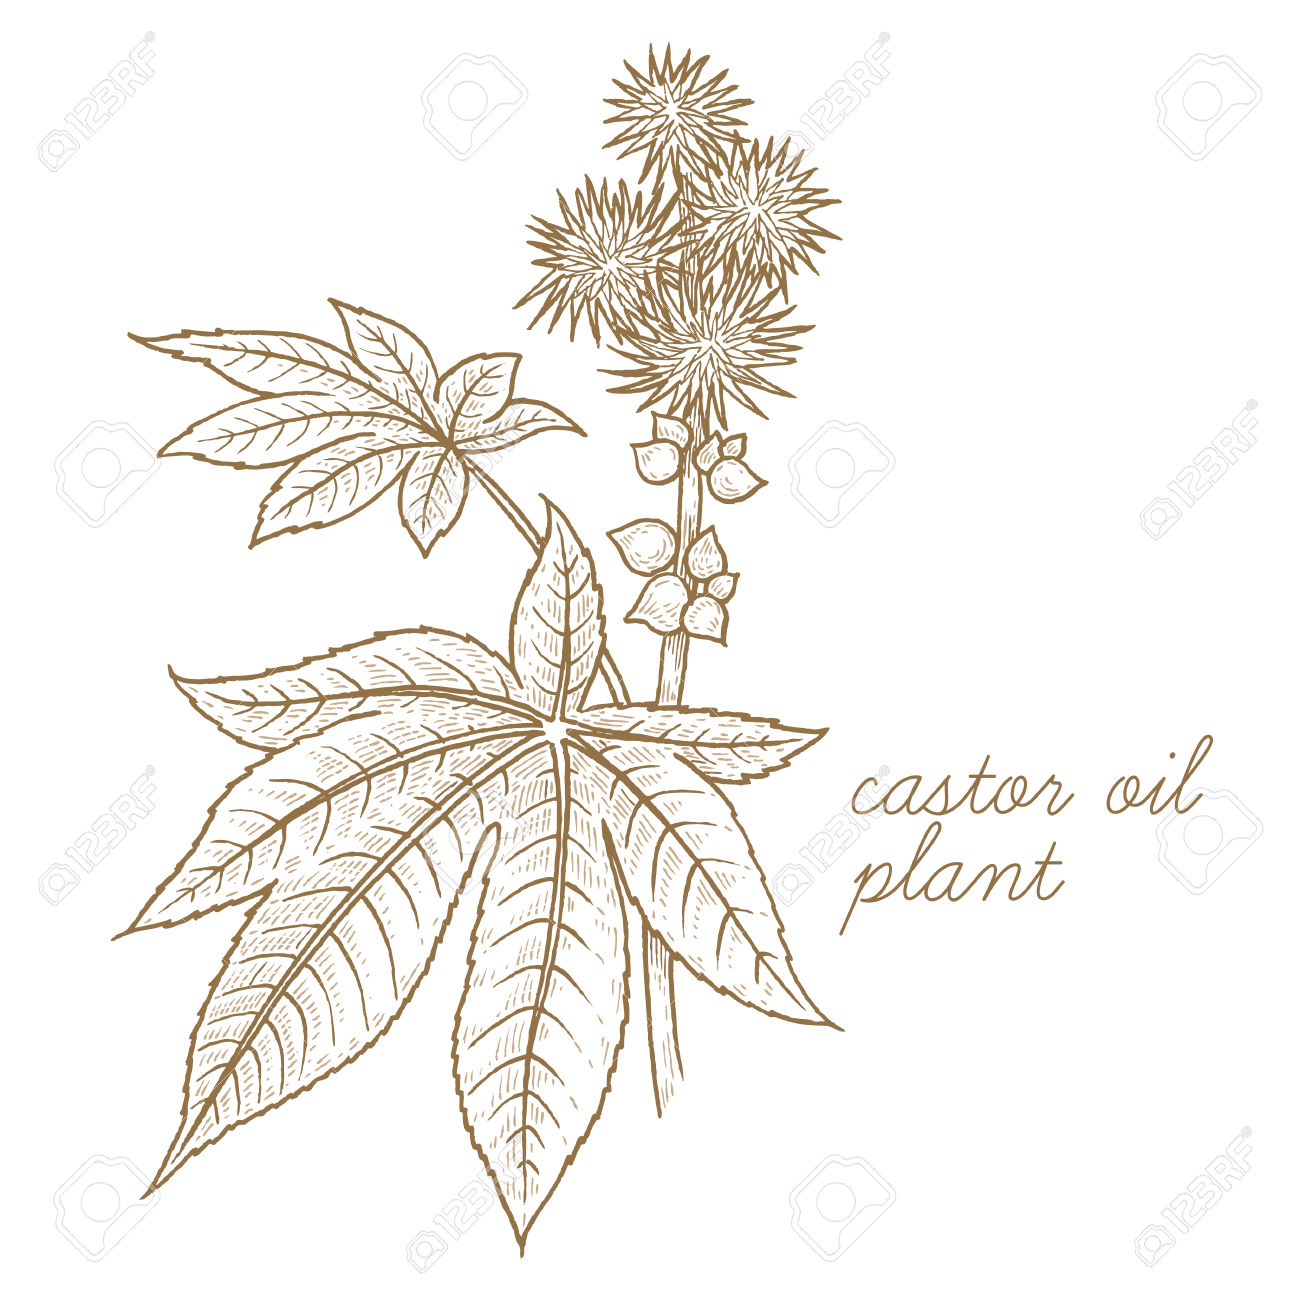 Castor Oil Plant. Vector Image Isolated On White Background.